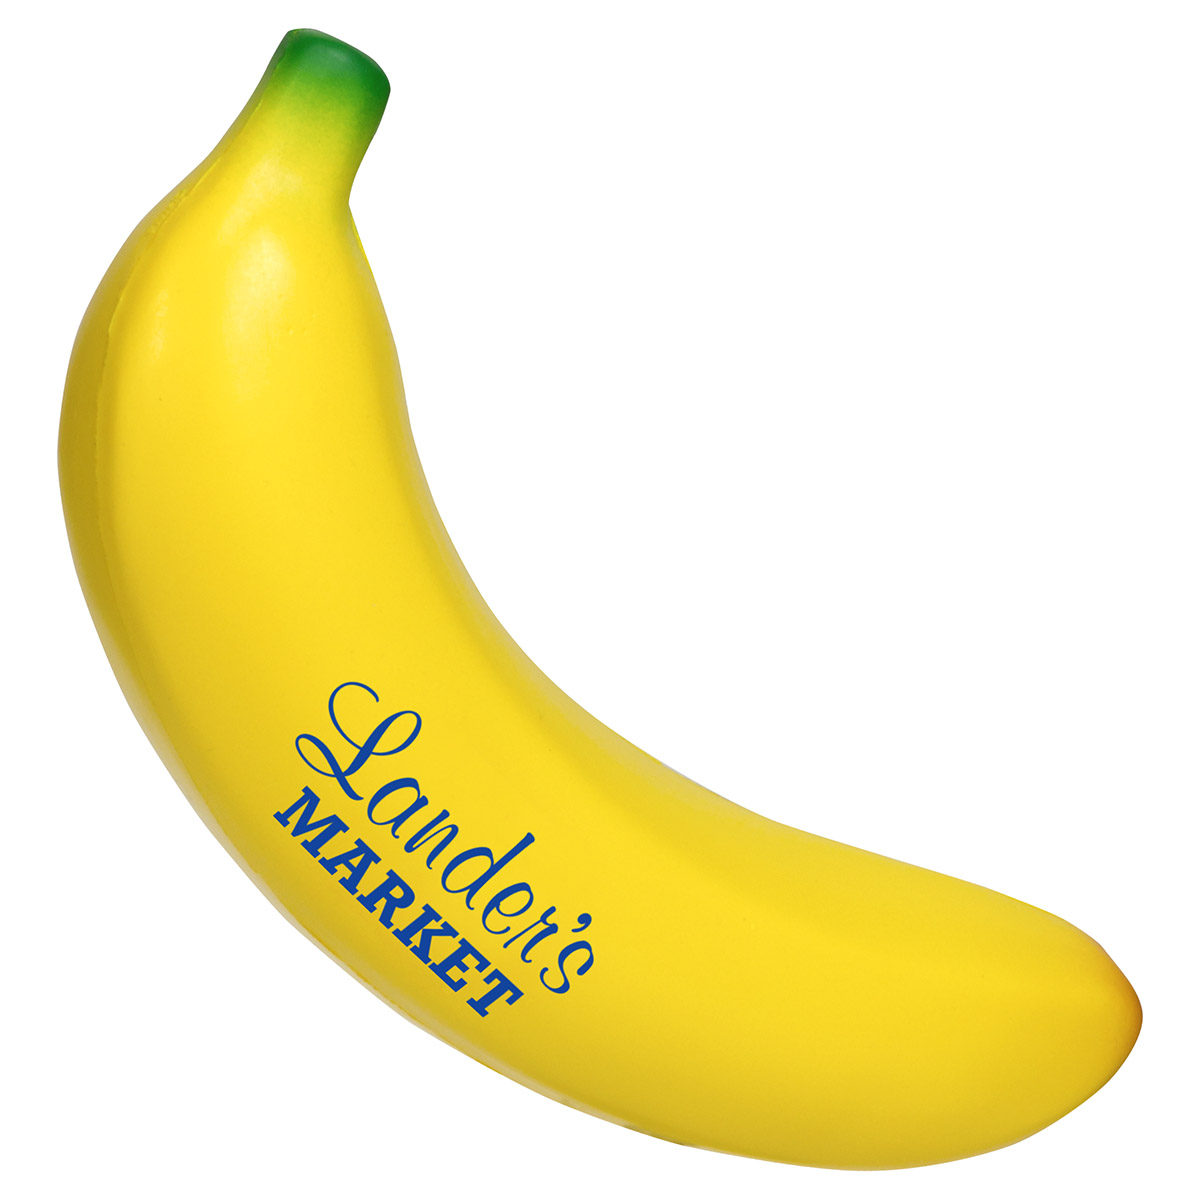 Banana Stress Reliever, LFR-BA02 - 1 Colour Imprint